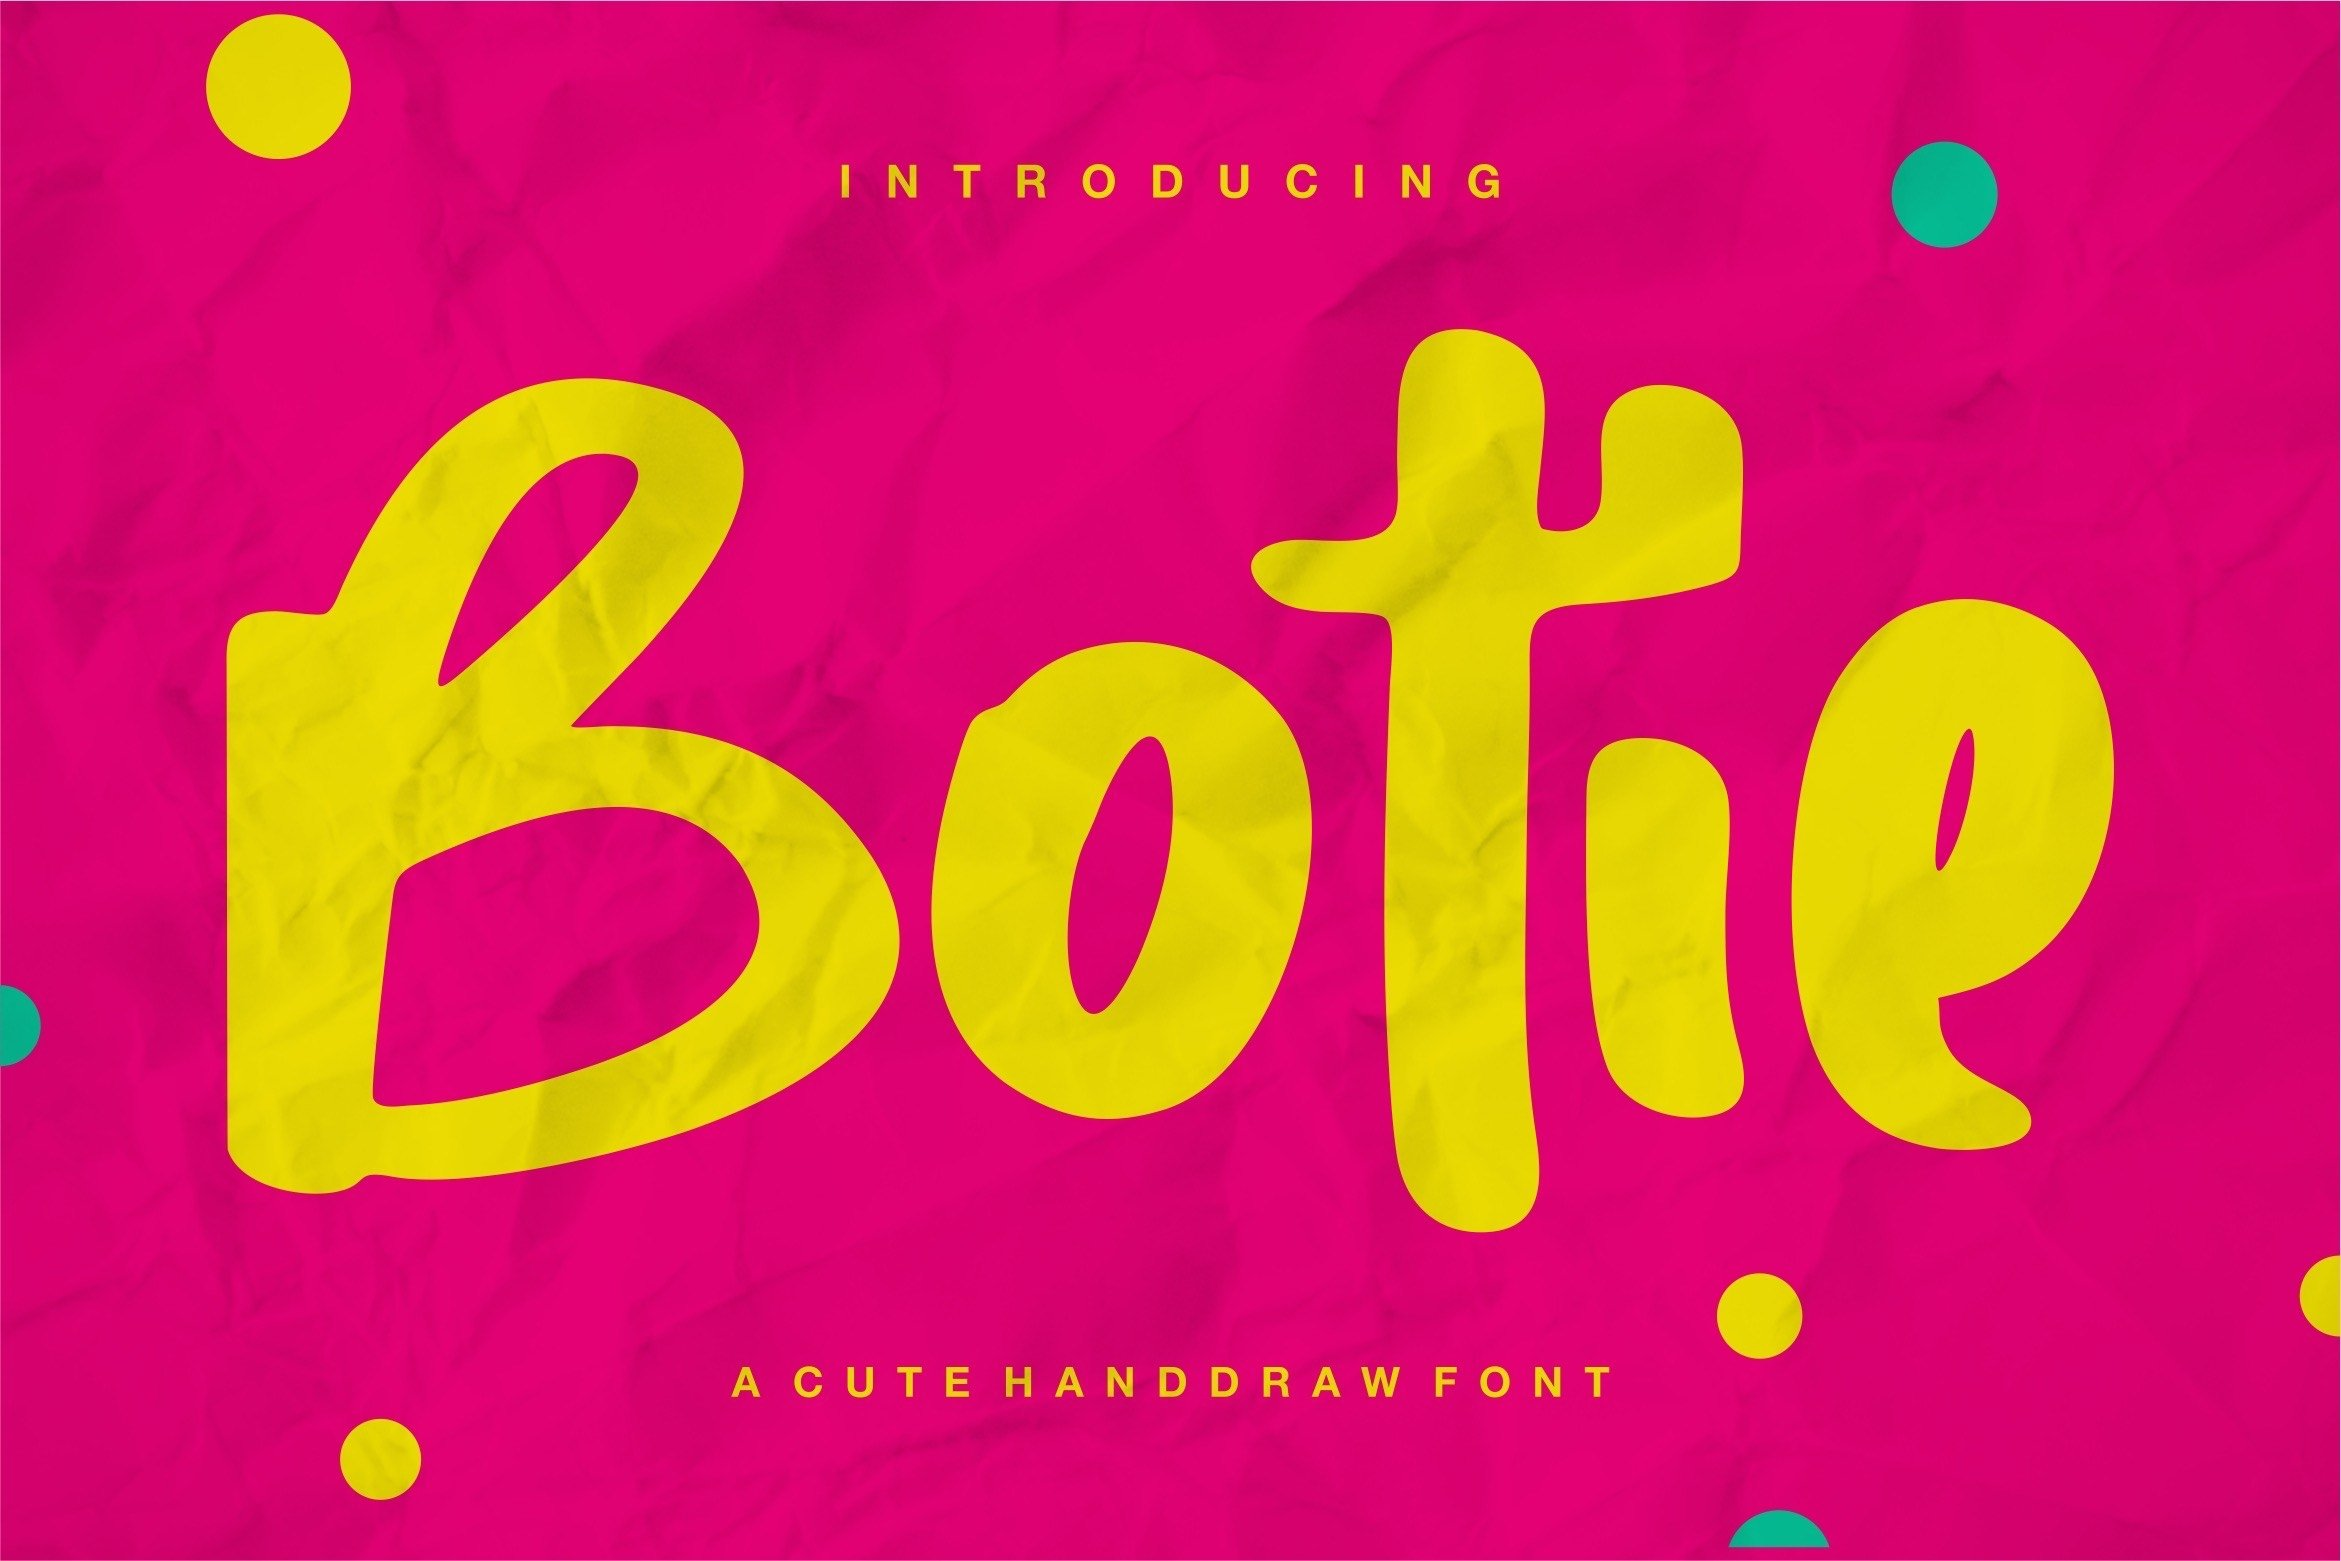 Botie - A Cute Handdraw Font example image 1